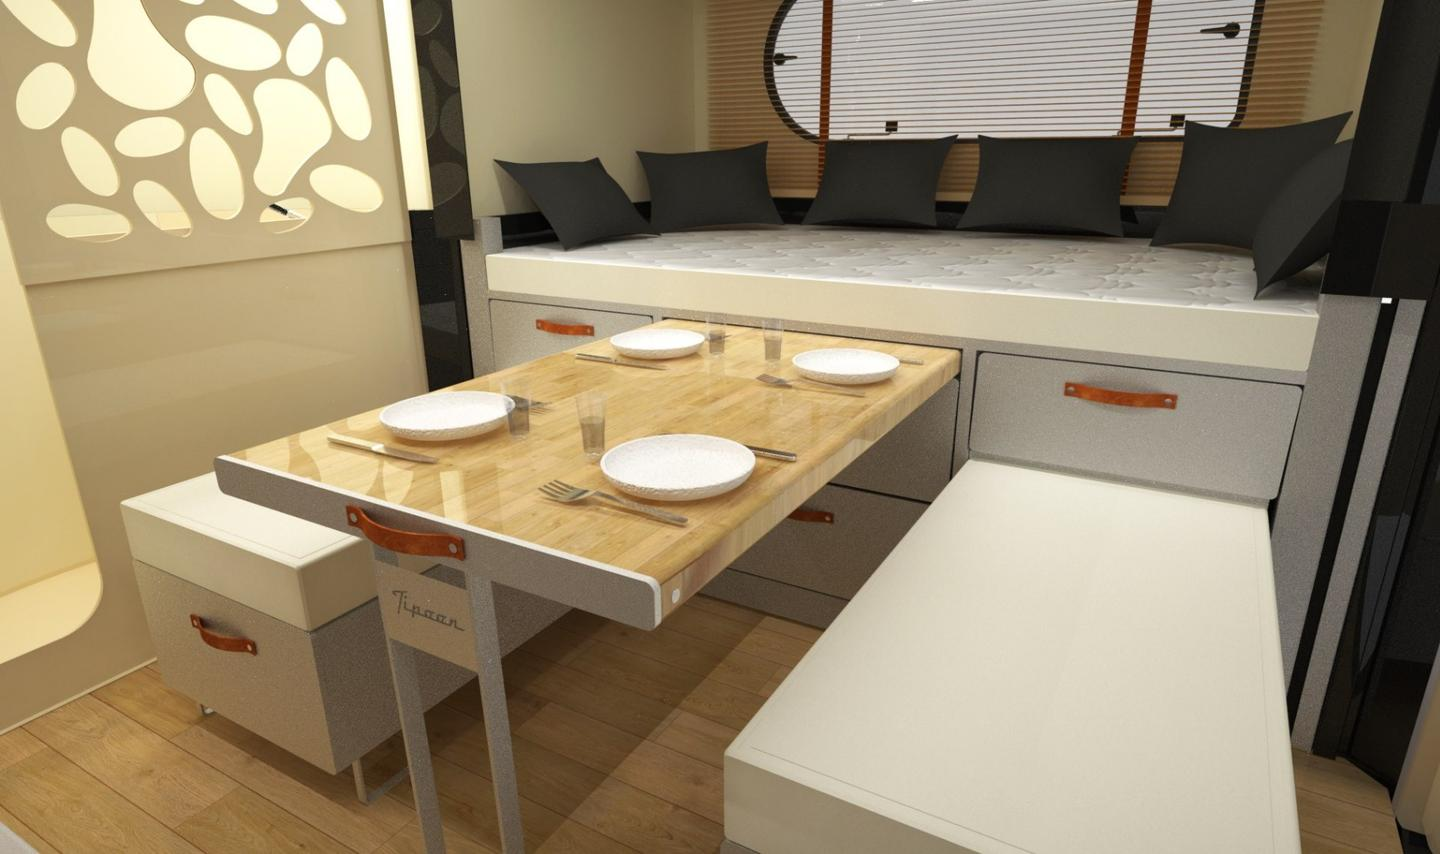 One of four dining/bedconfigurations, the Tipoon dining area features a slide-out table and dual benches